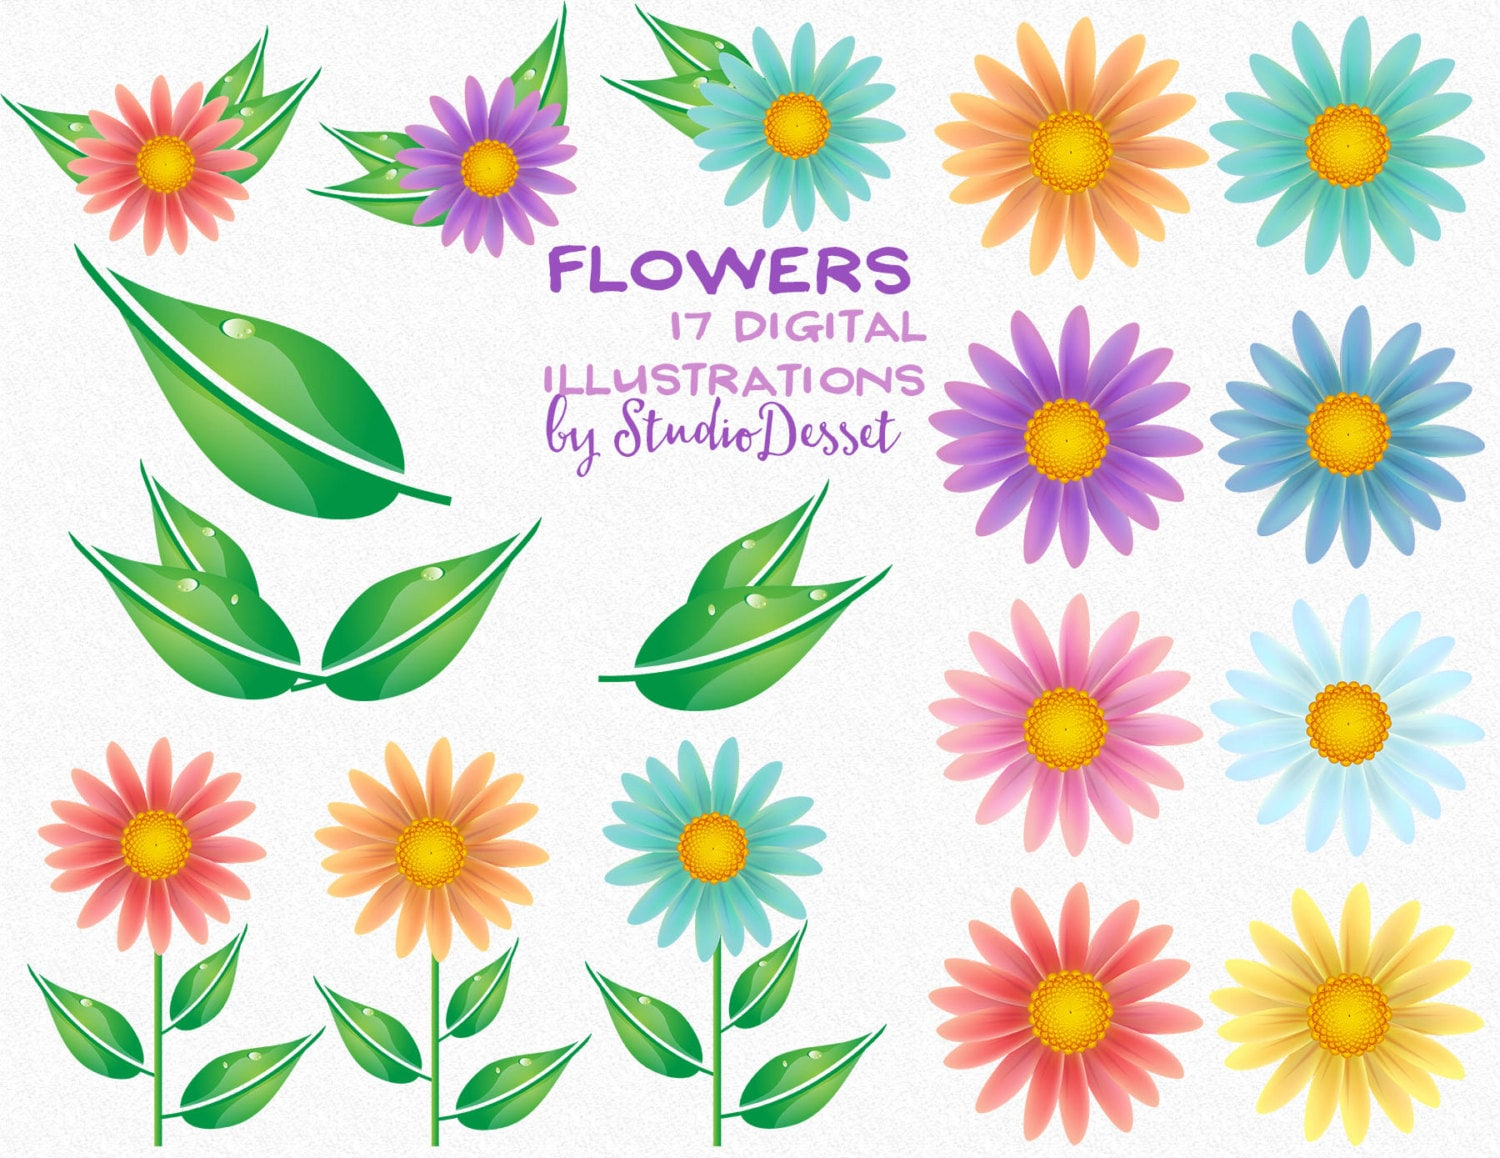 Flower cliparts daisy flower floral clip art daisy clipart this is a digital file izmirmasajfo